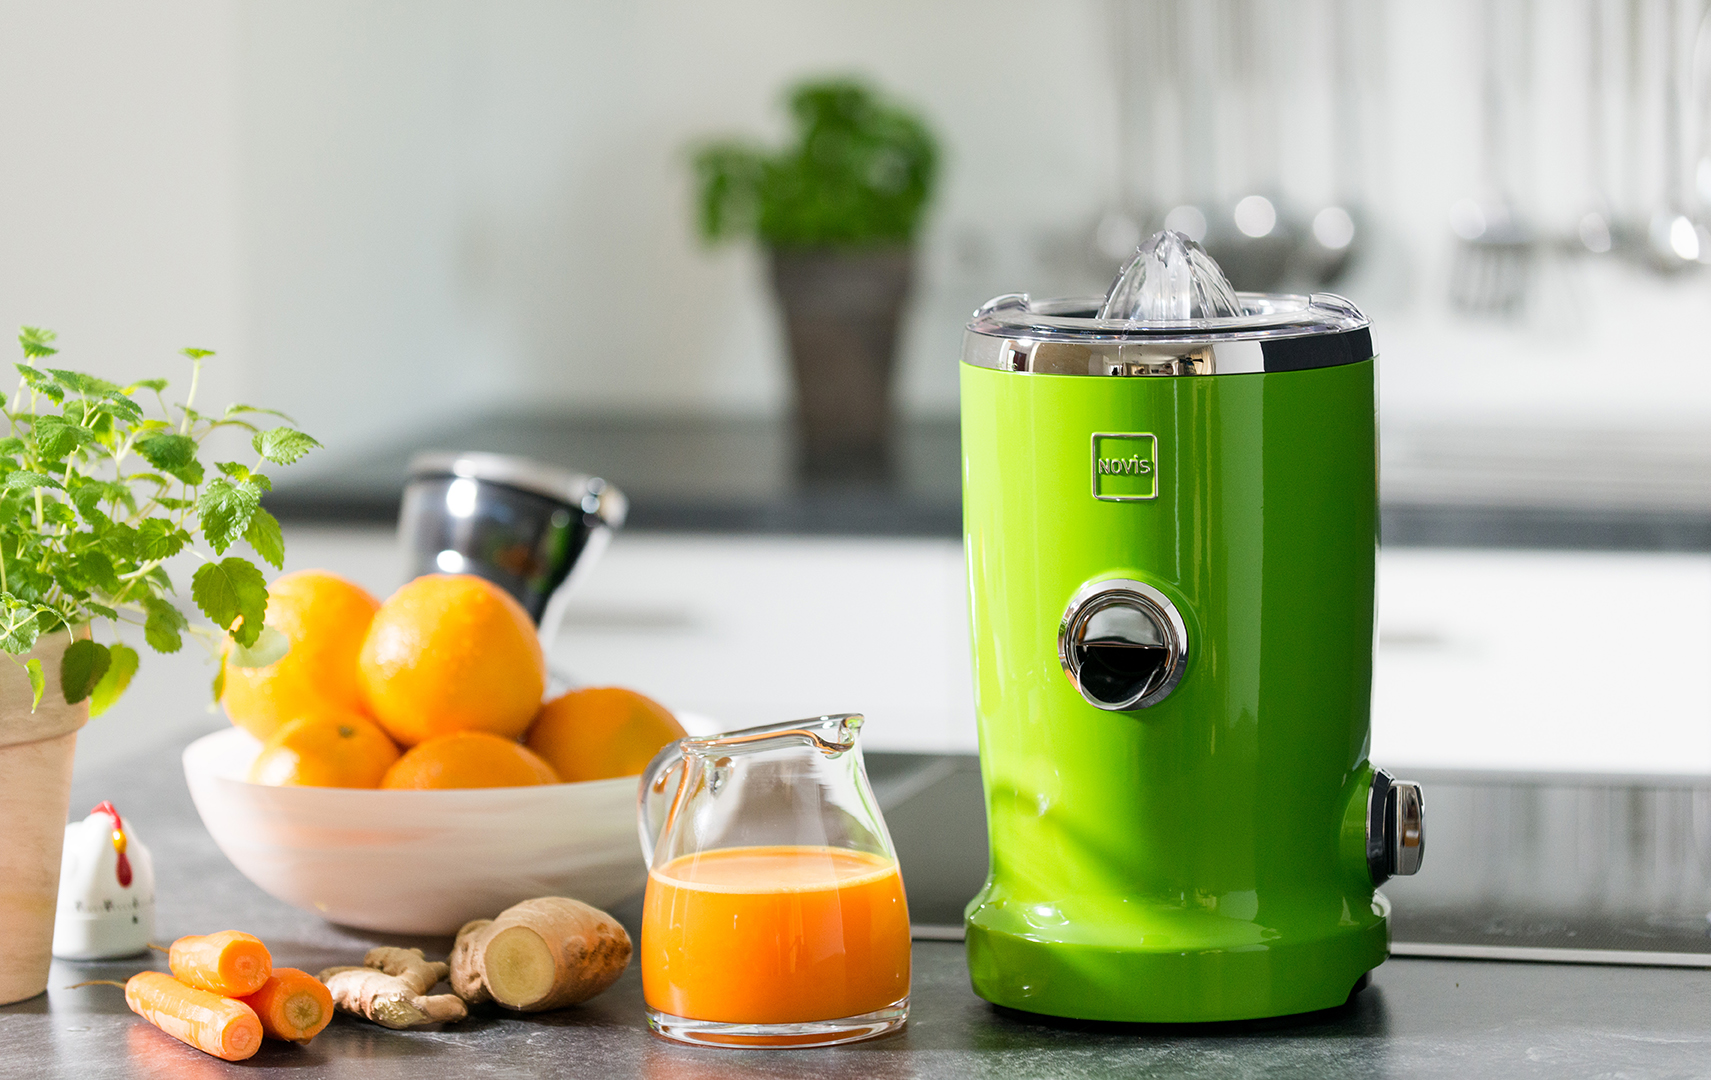 Why Is A Juicer A Good Purchase?